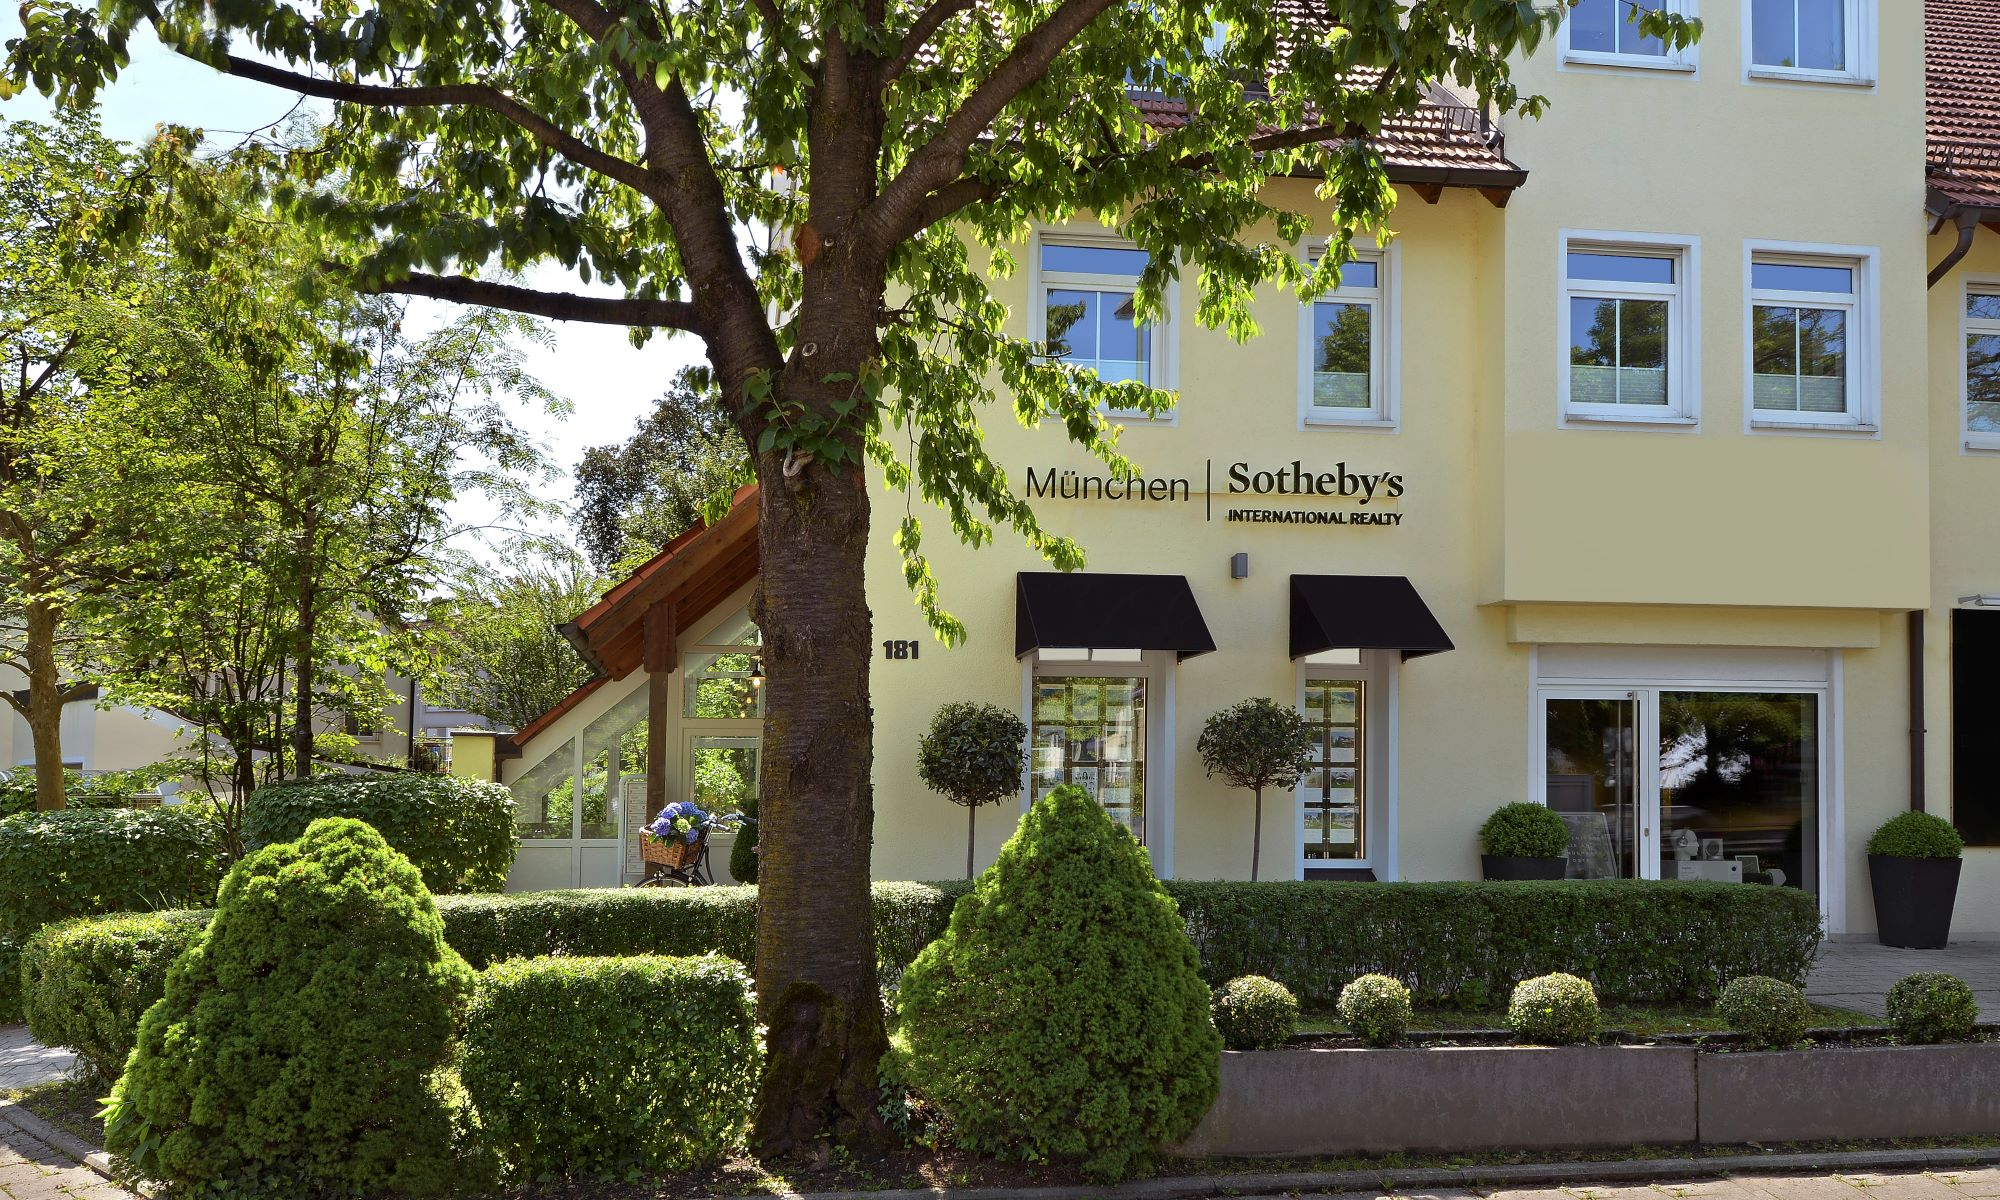 Munich Sotheby's International Realty